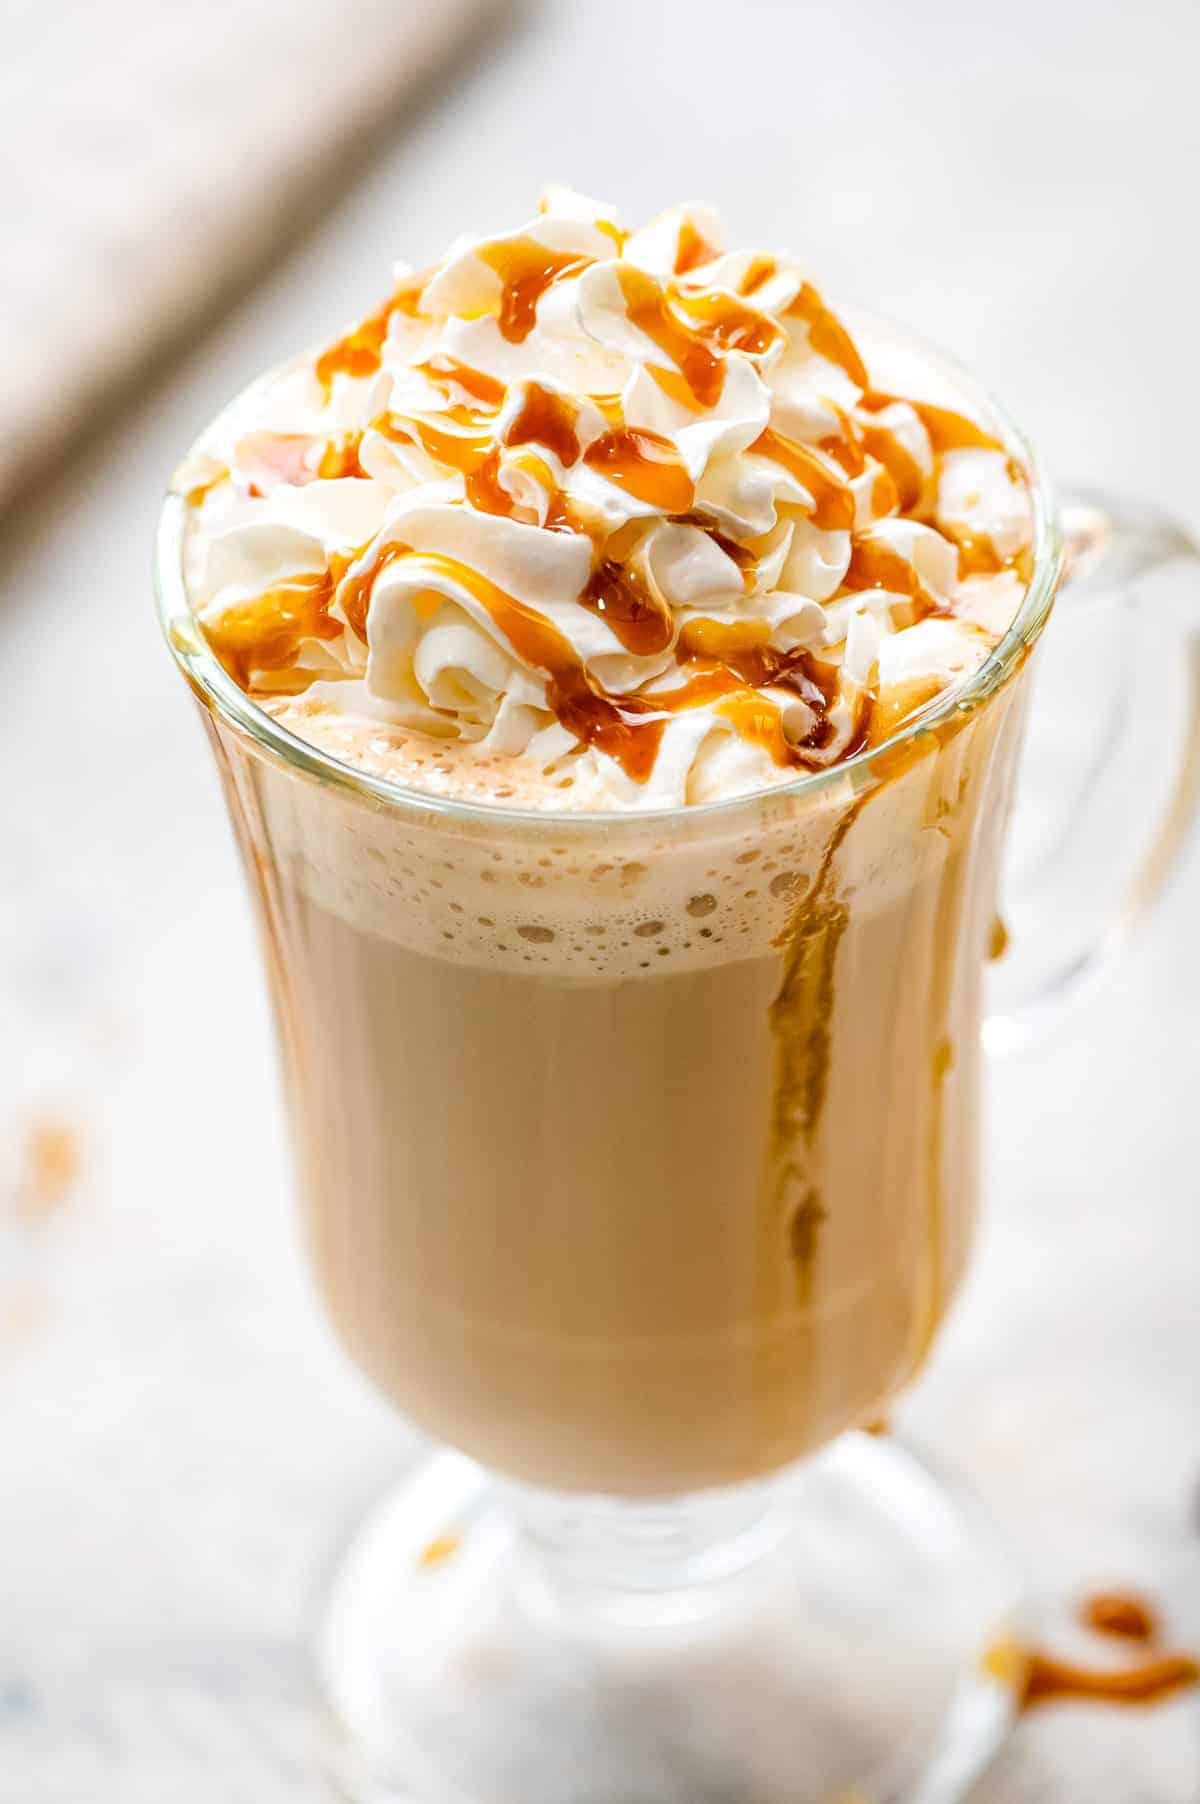 Caramel Latte in a glass with whipped topping and caramel sauce